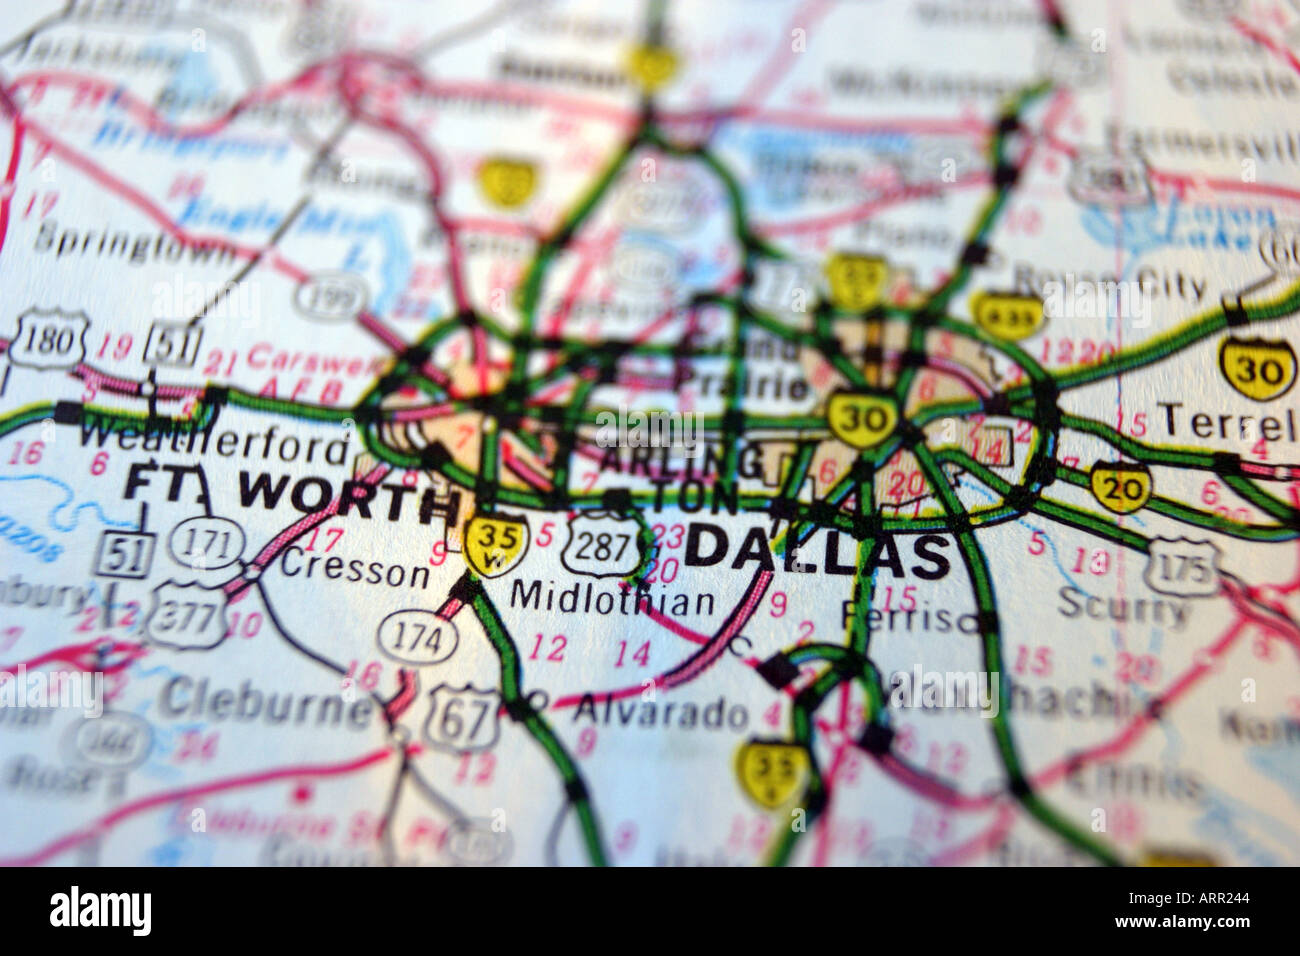 Dallas On A Map Of Texas.Close Up Map Of Dallas Texas Stock Photo 2994755 Alamy